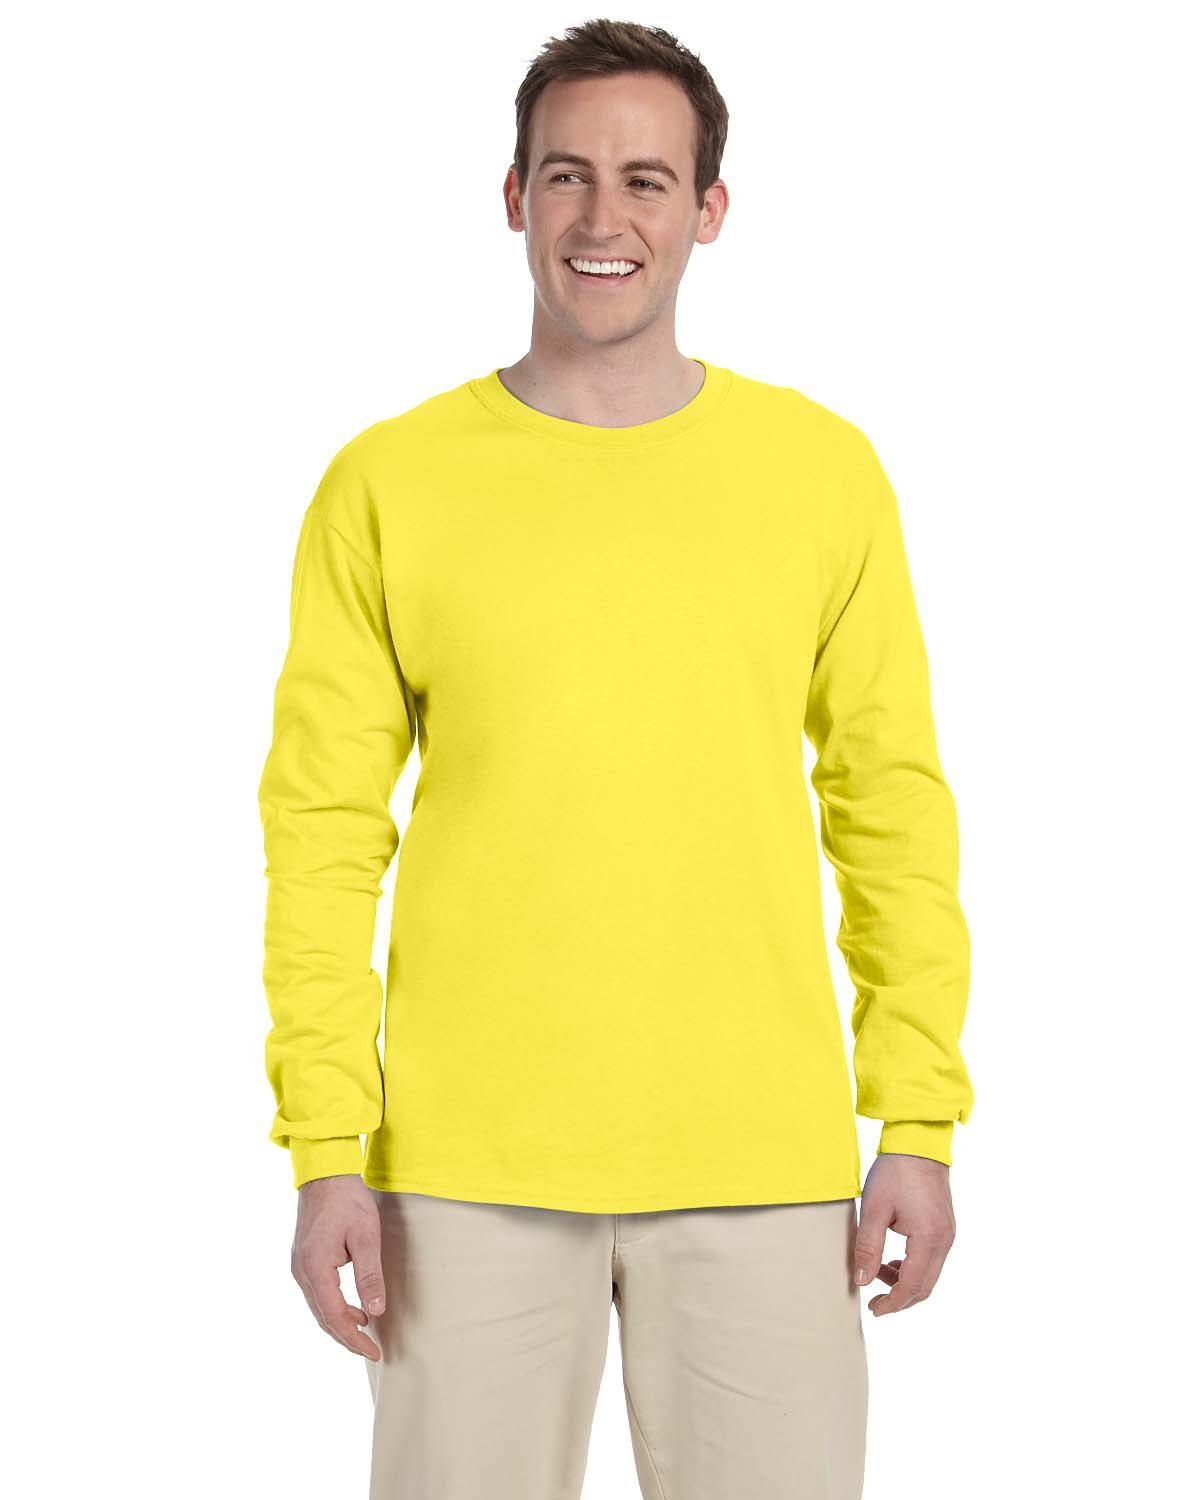 Fruit of the Loom Adult HD Cotton™ Long-Sleeve T-Shirt YELLOW